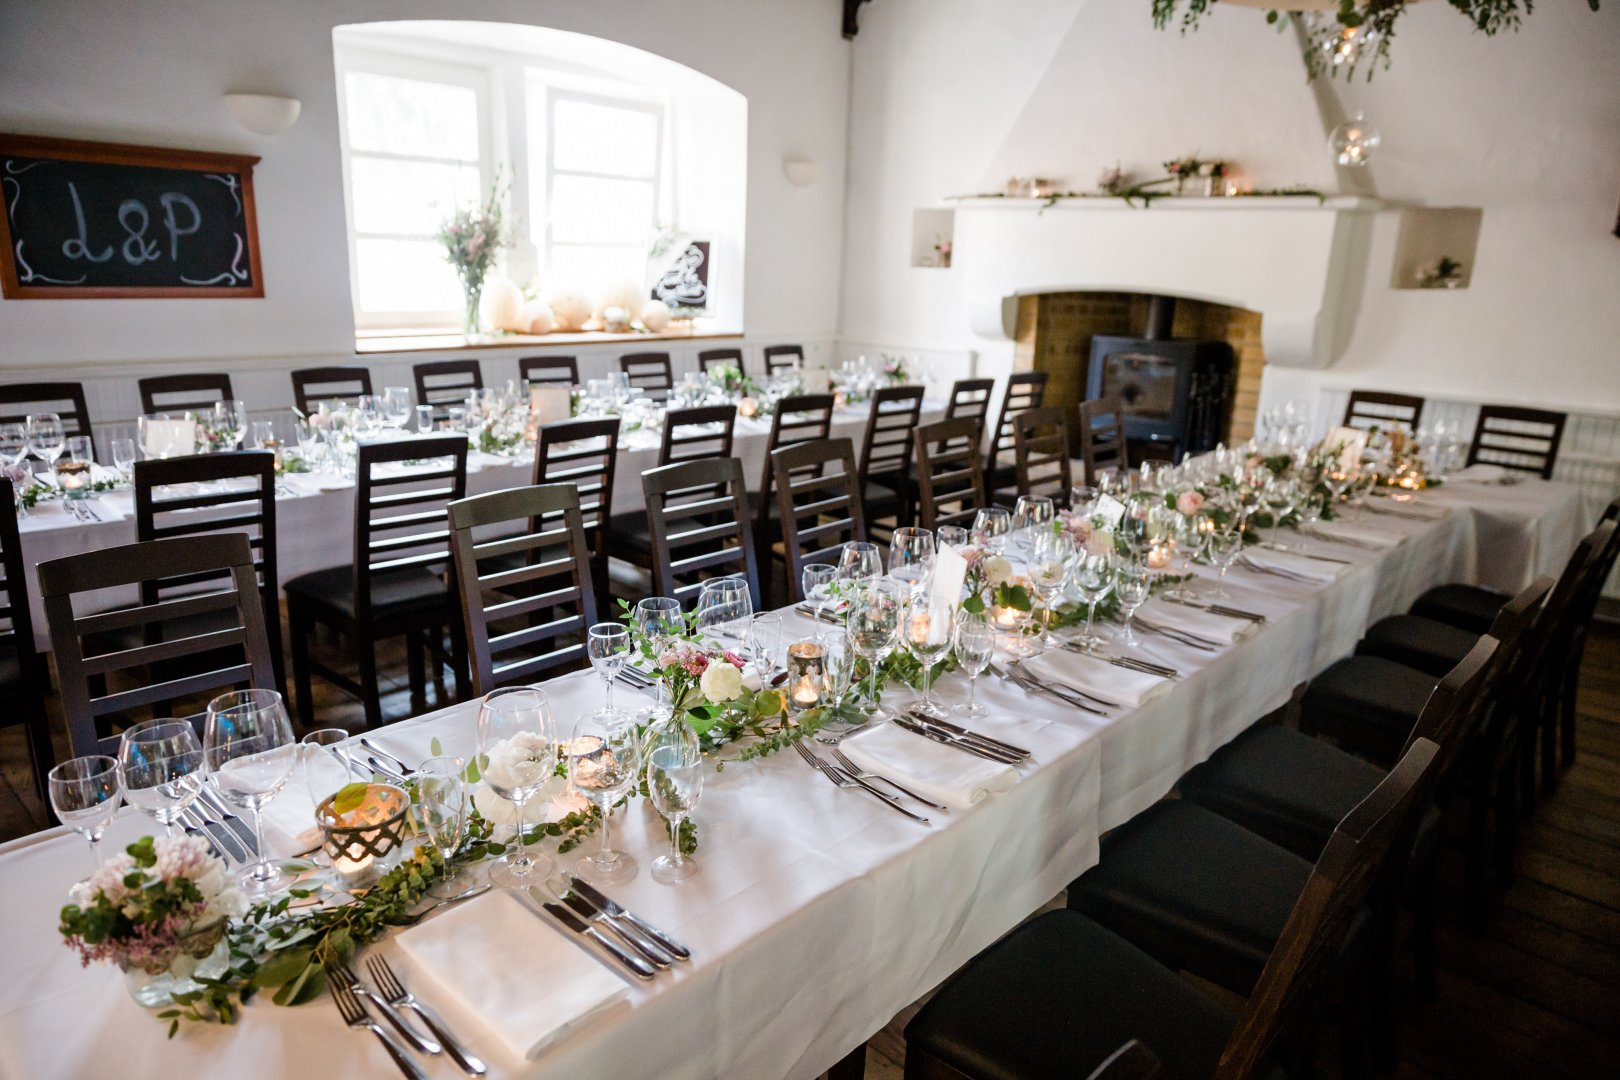 Rehearsal dinner Room Table Wedding reception Chiavari chair Restaurant Furniture Function hall Ceremony Event Interior design Chair Party Centrepiece Floristry Building Banquet Tablecloth Decoration Dining room Flower Linens Wedding